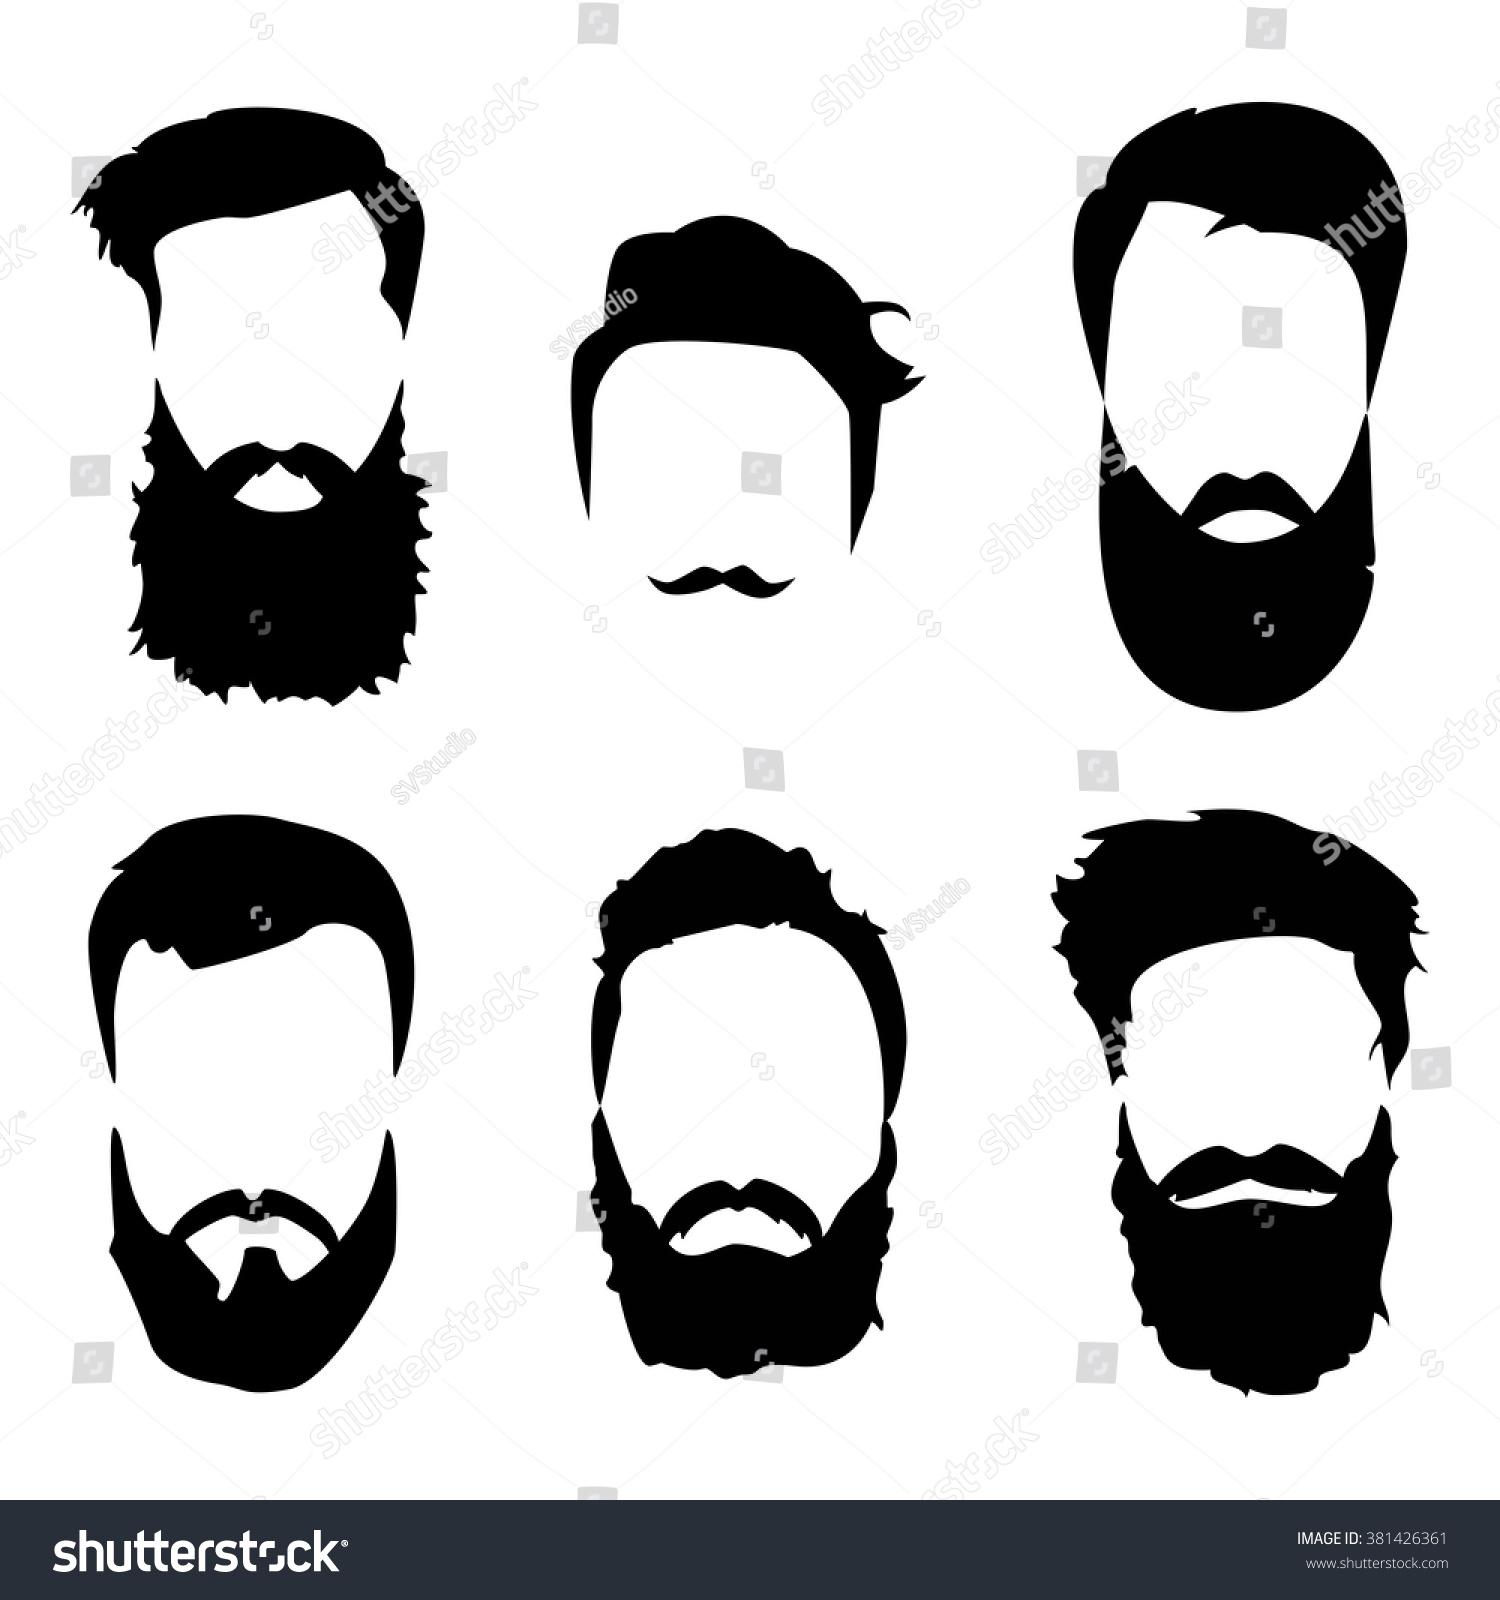 clipart library stock Beard clipart doodle. Transparent free for